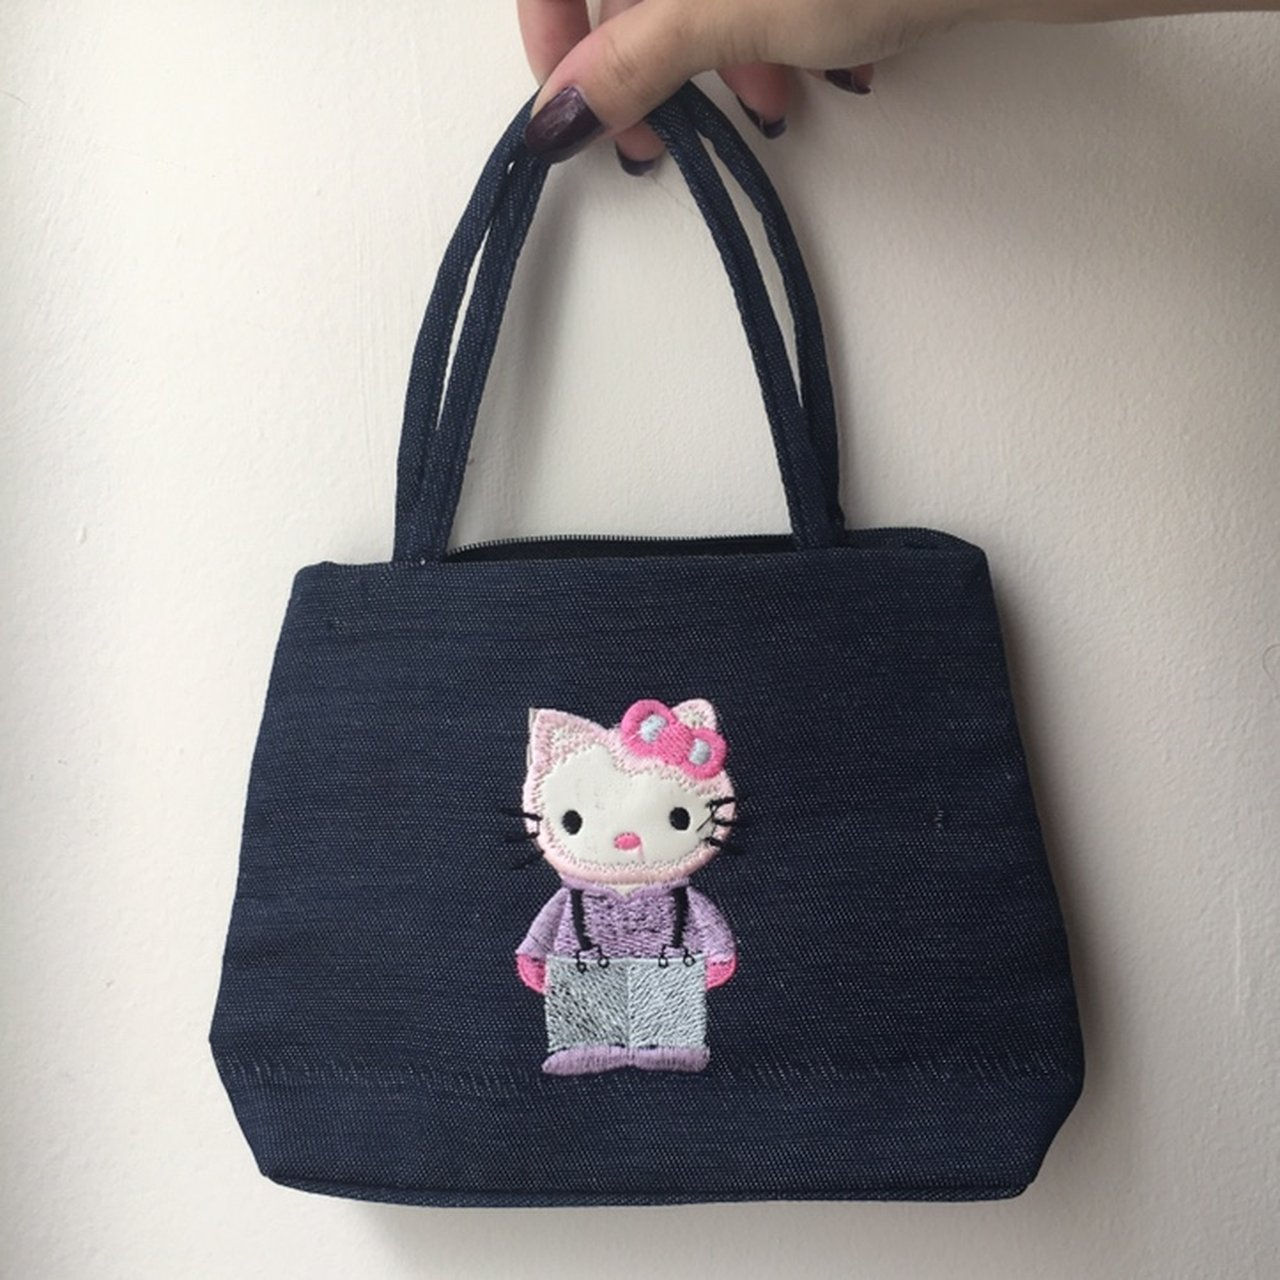 accdadf466b4 Adorable dark blue denim colored mini Hello Kitty bag in Has - Depop